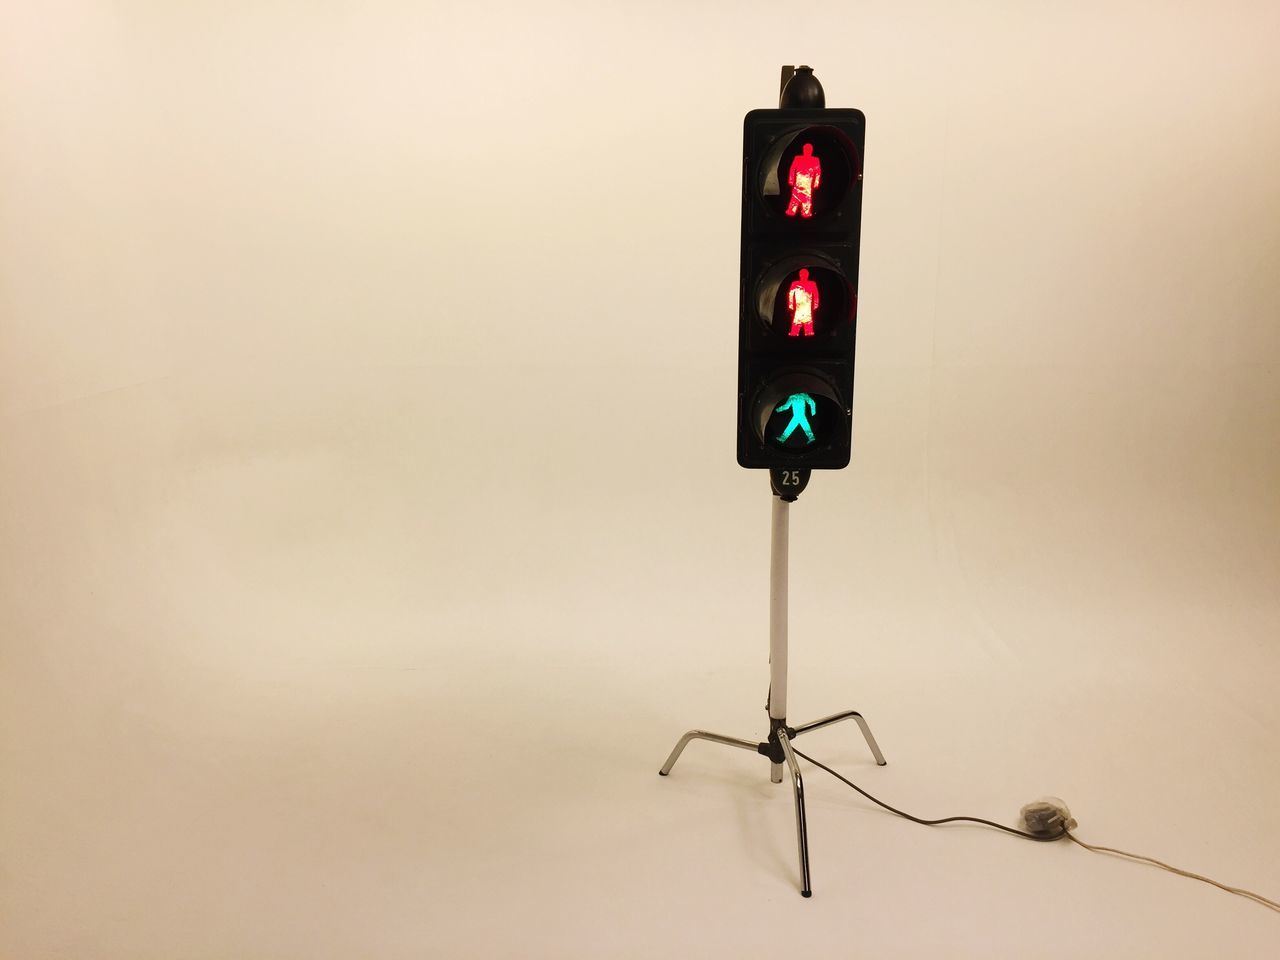 Traffic Lights Shooting No People StillLifePhotography White Studio Shot Red Green Color